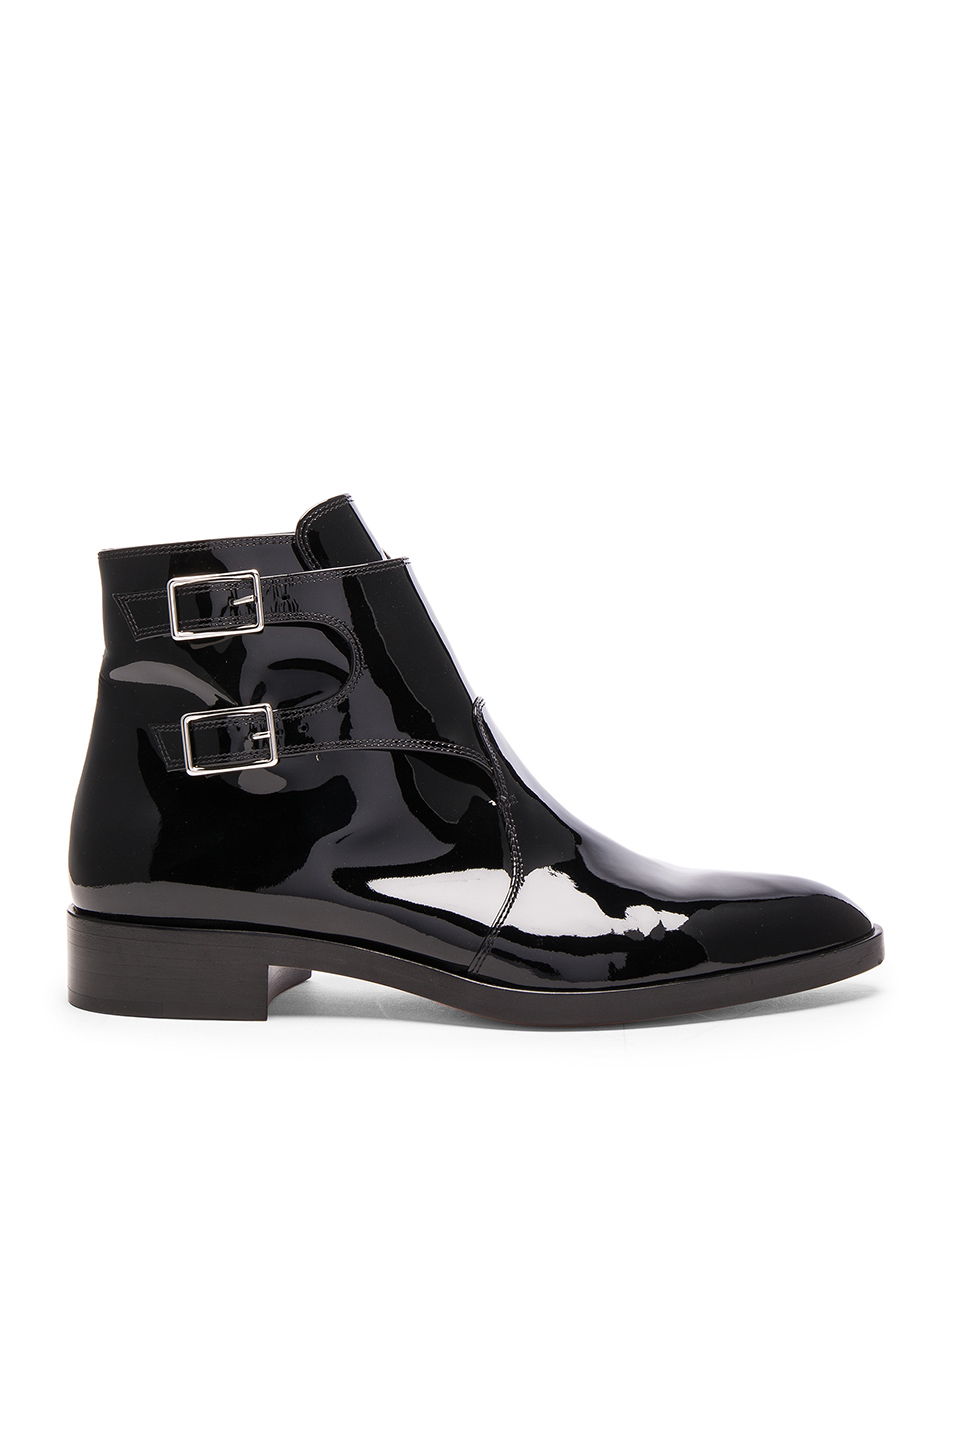 Gianvito Rossi Patent Leather Boots in Black